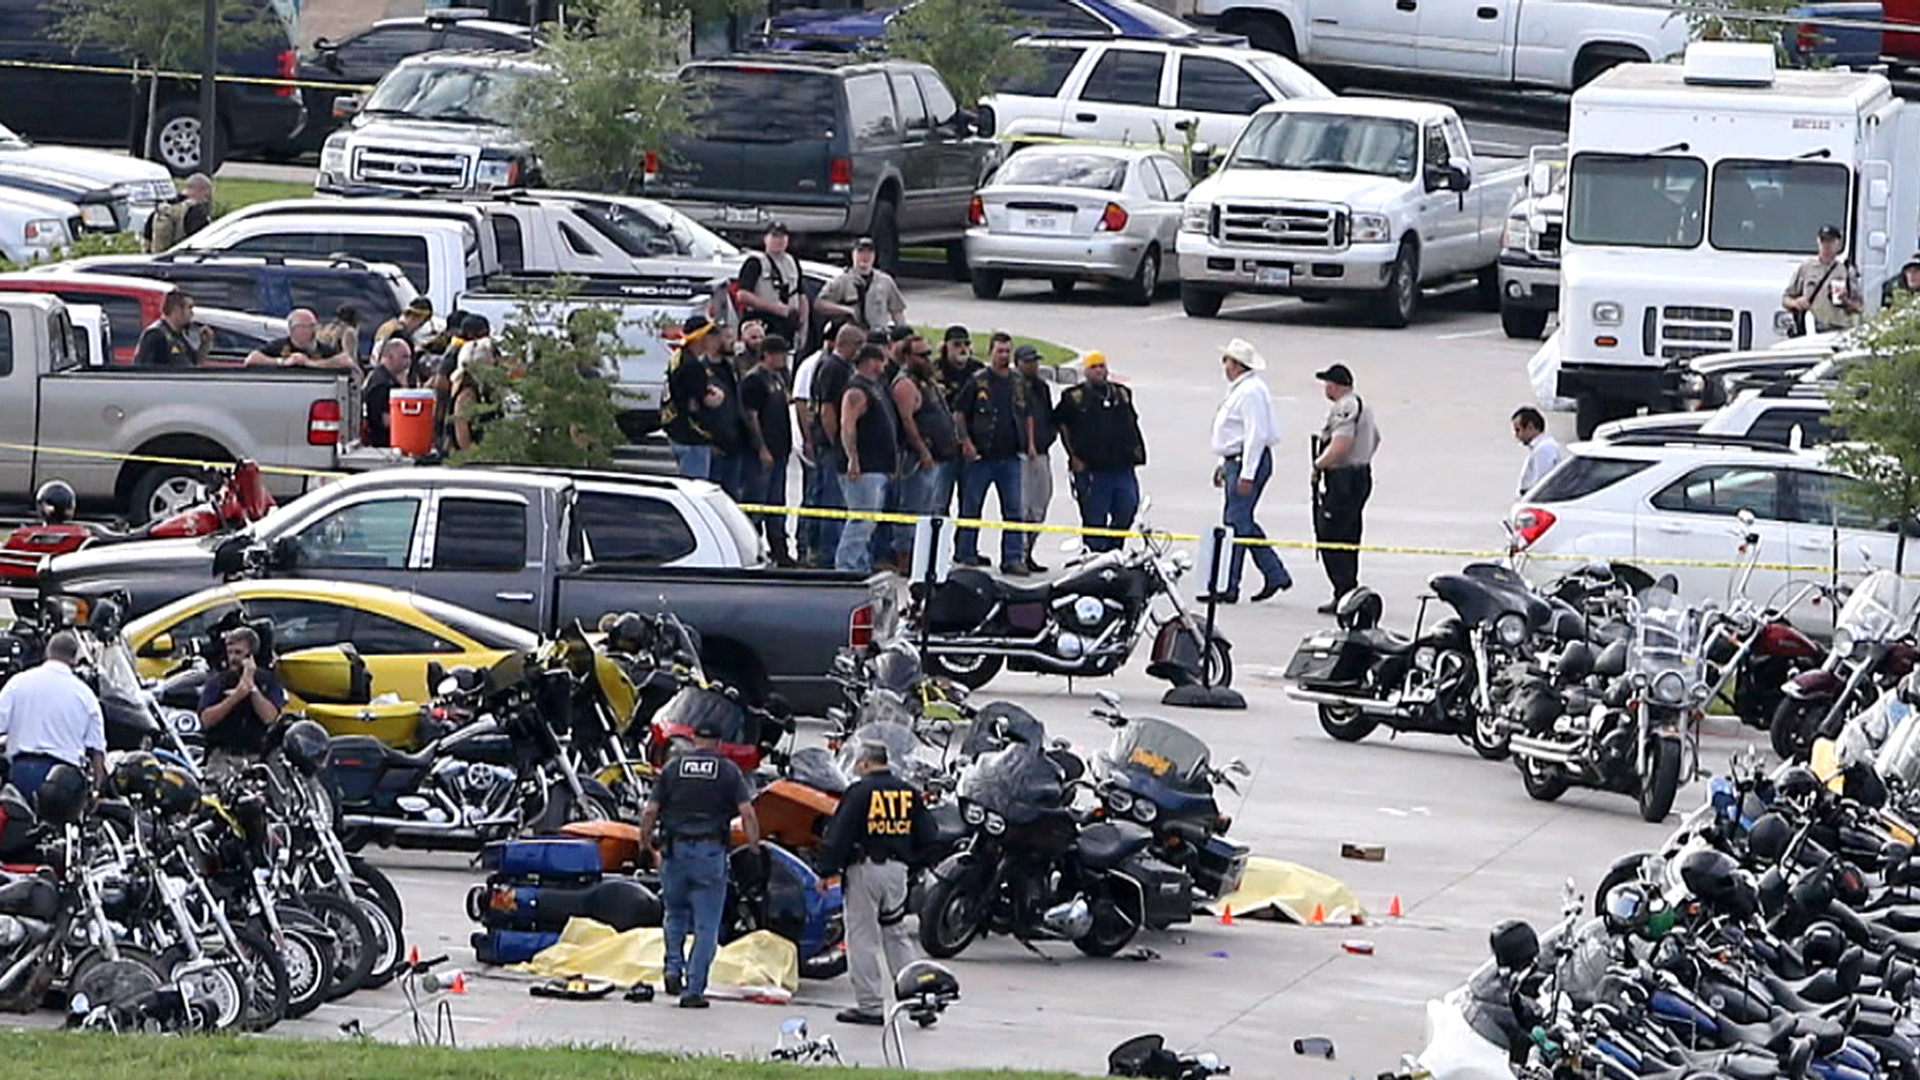 Waco Biker Gang Shootout: Threats Against Cops Have 'Toned Down'